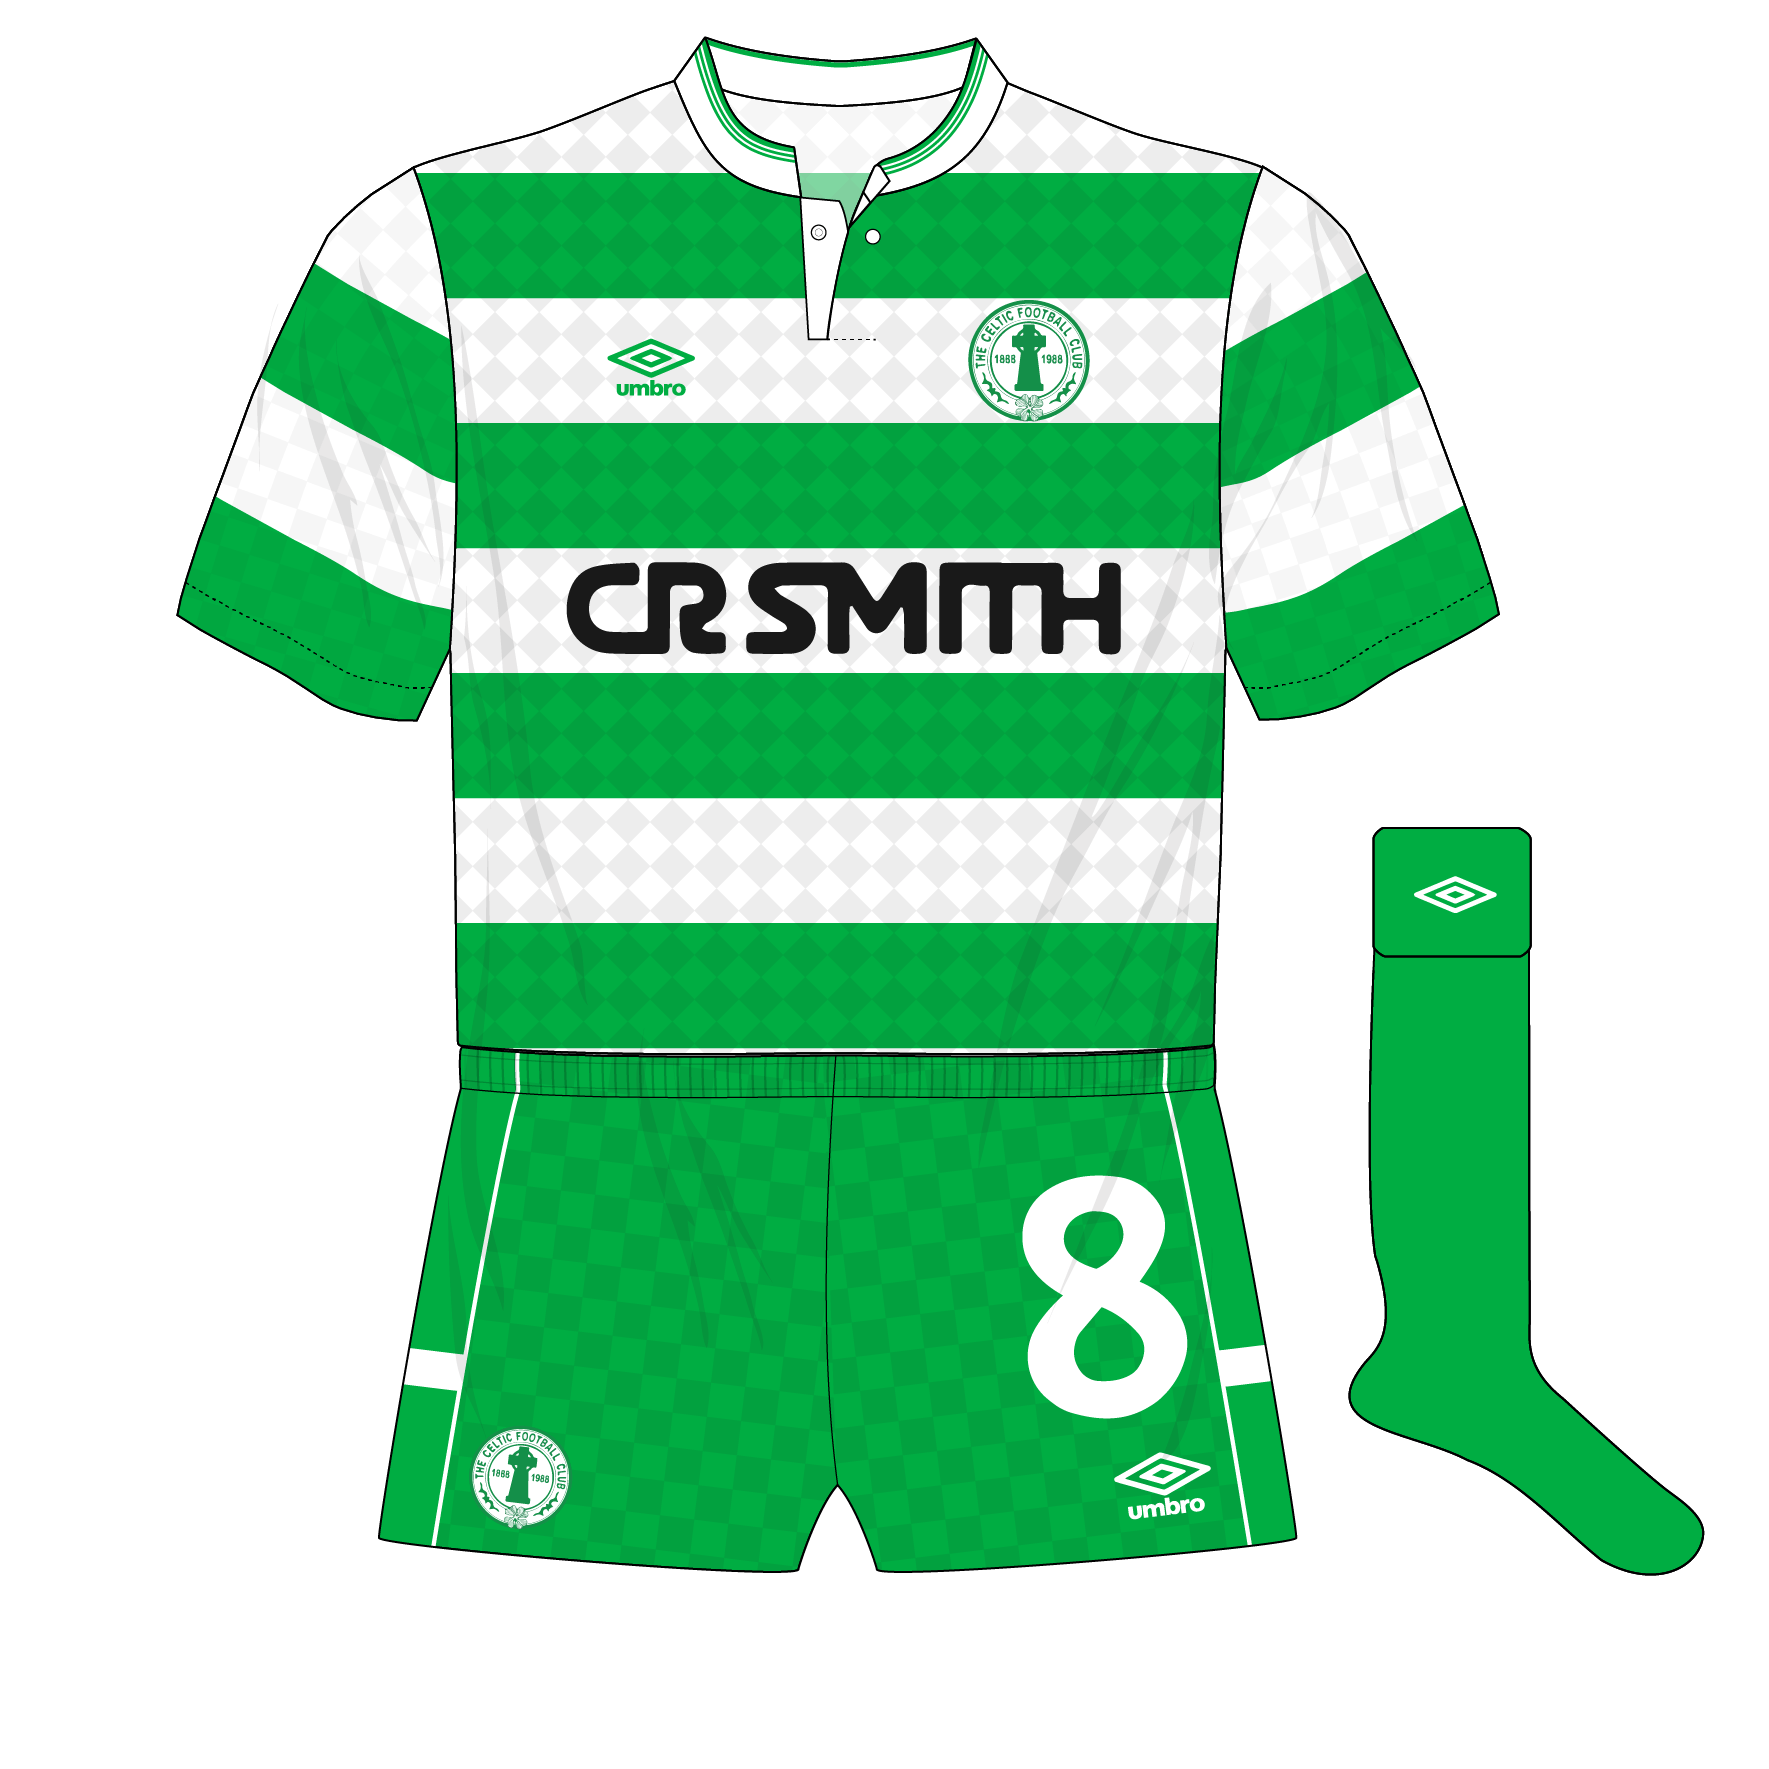 size 40 29812 755d6 Celtic, Hibernian and the overall clash – Museum of Jerseys